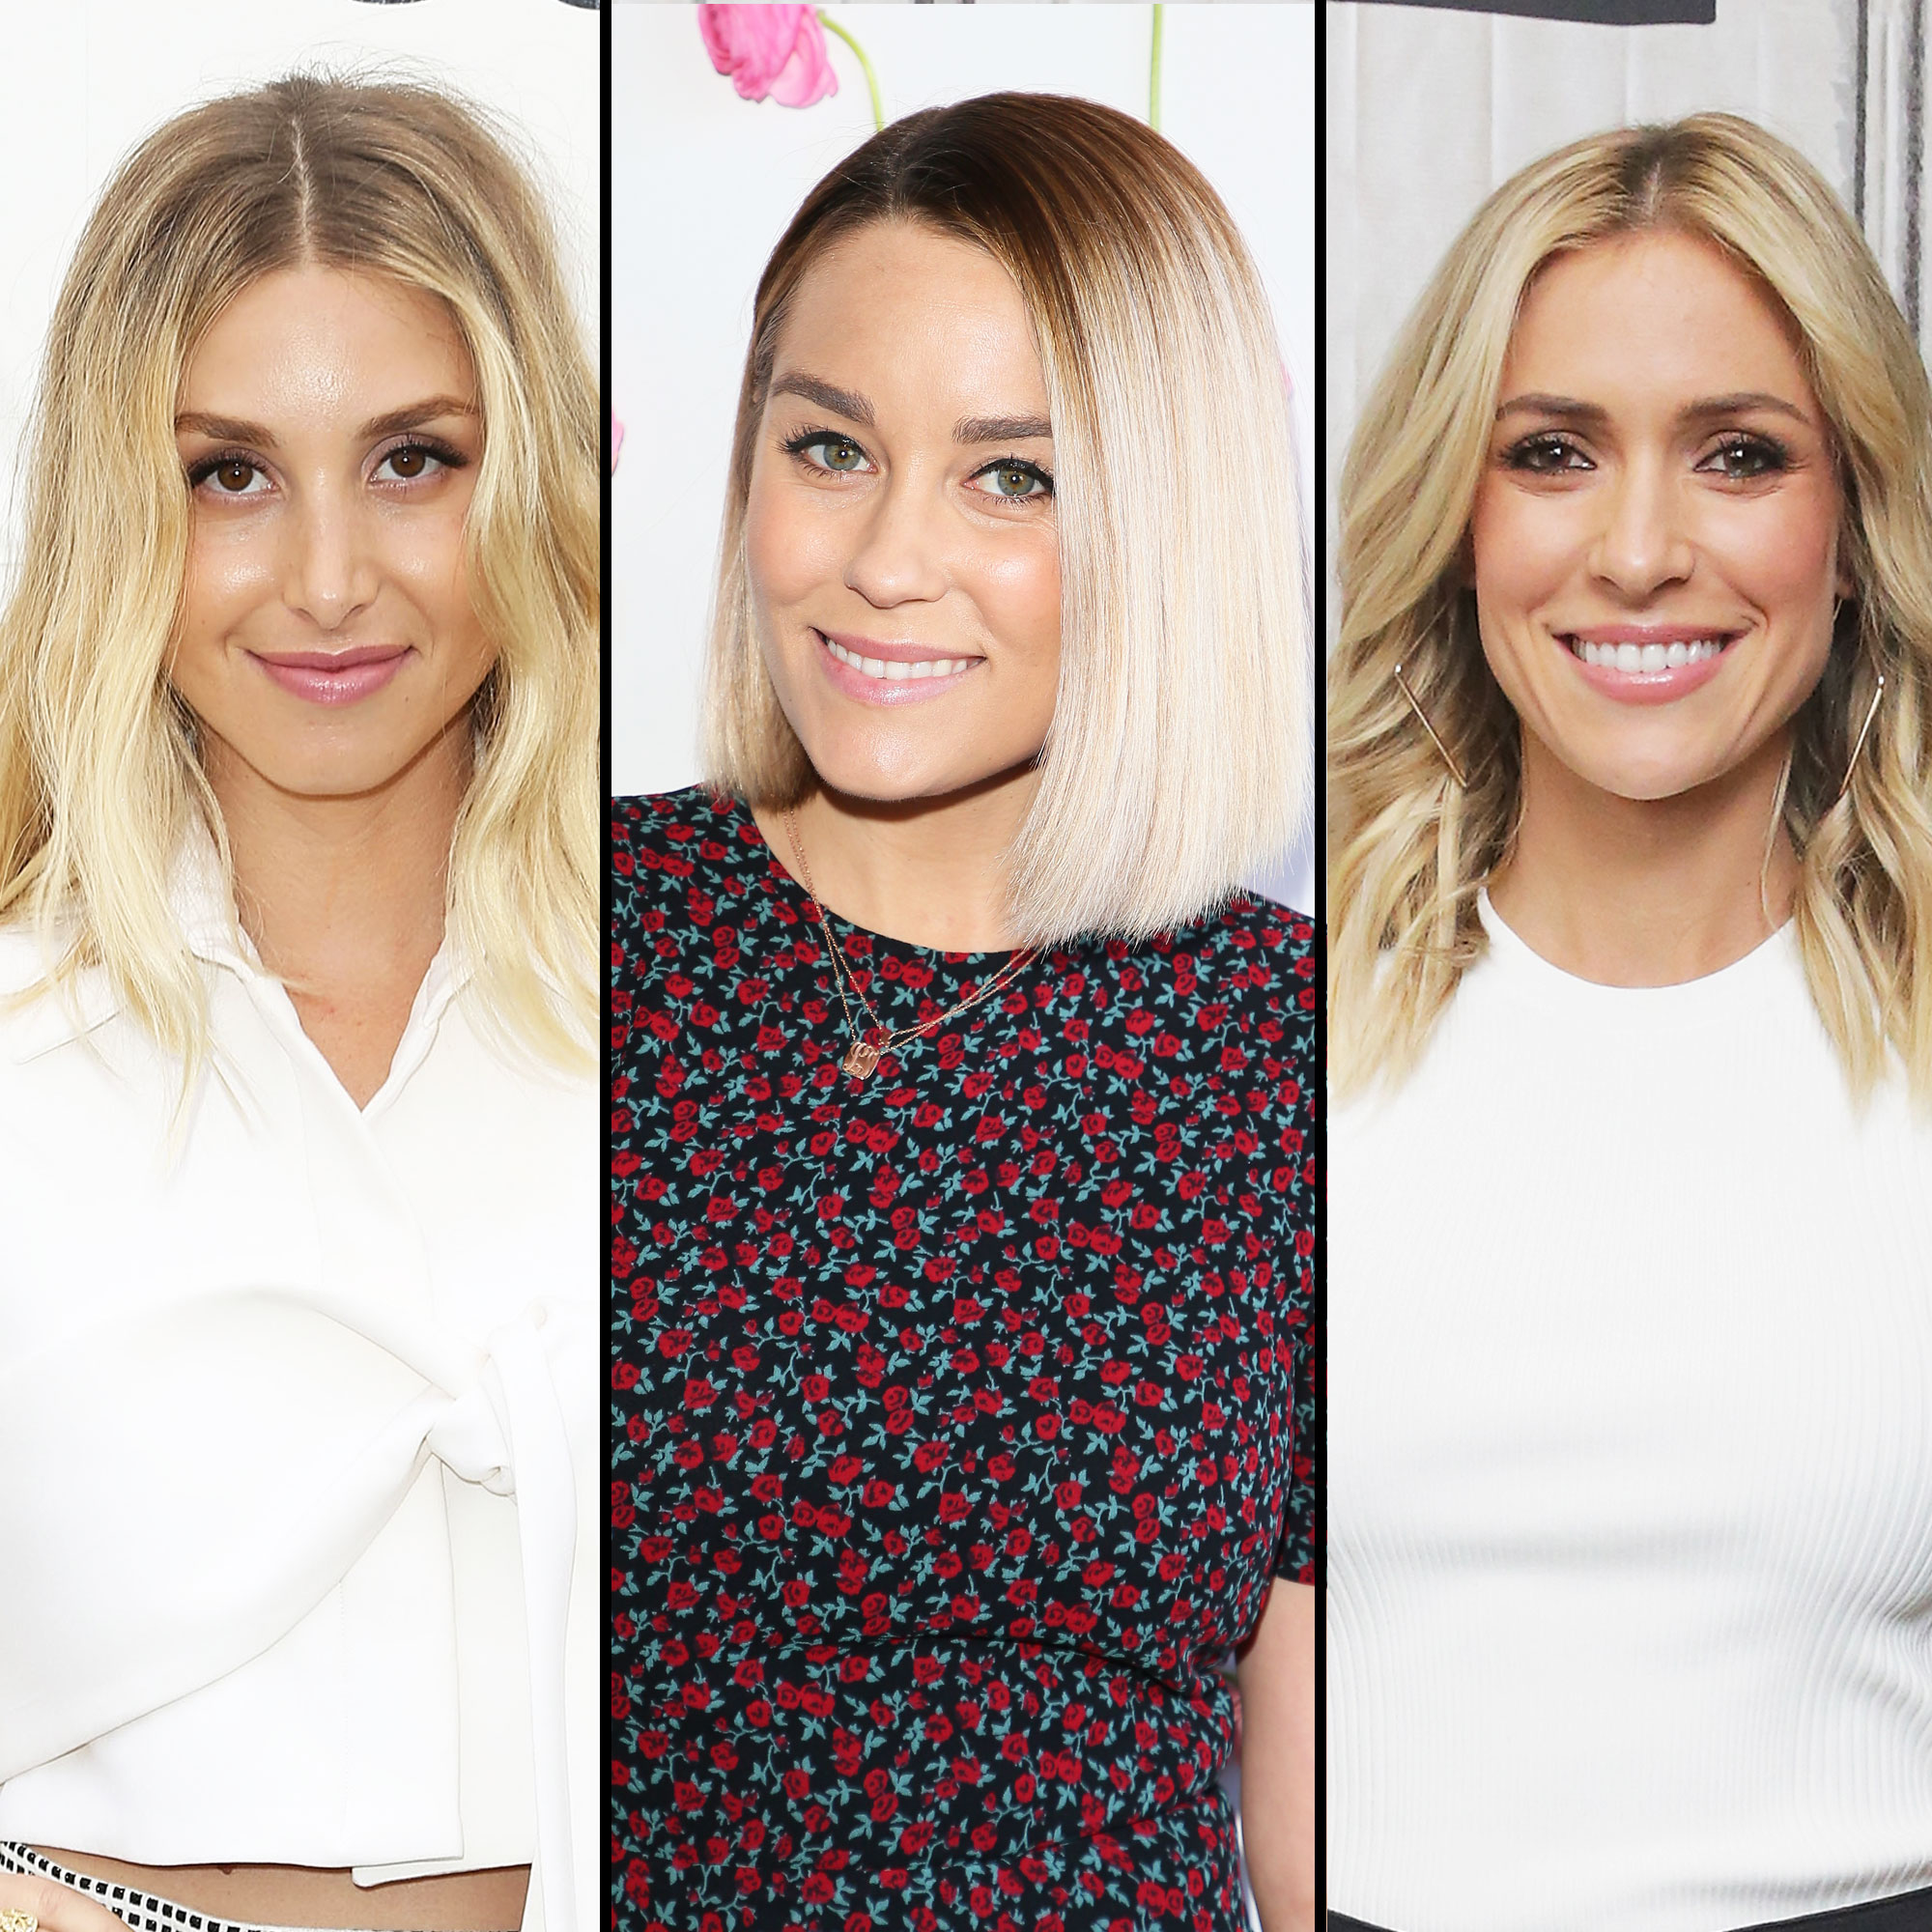 Lauren Conrad Whitney Port On Lauren Conrad Kristin Cavallari And The Hills